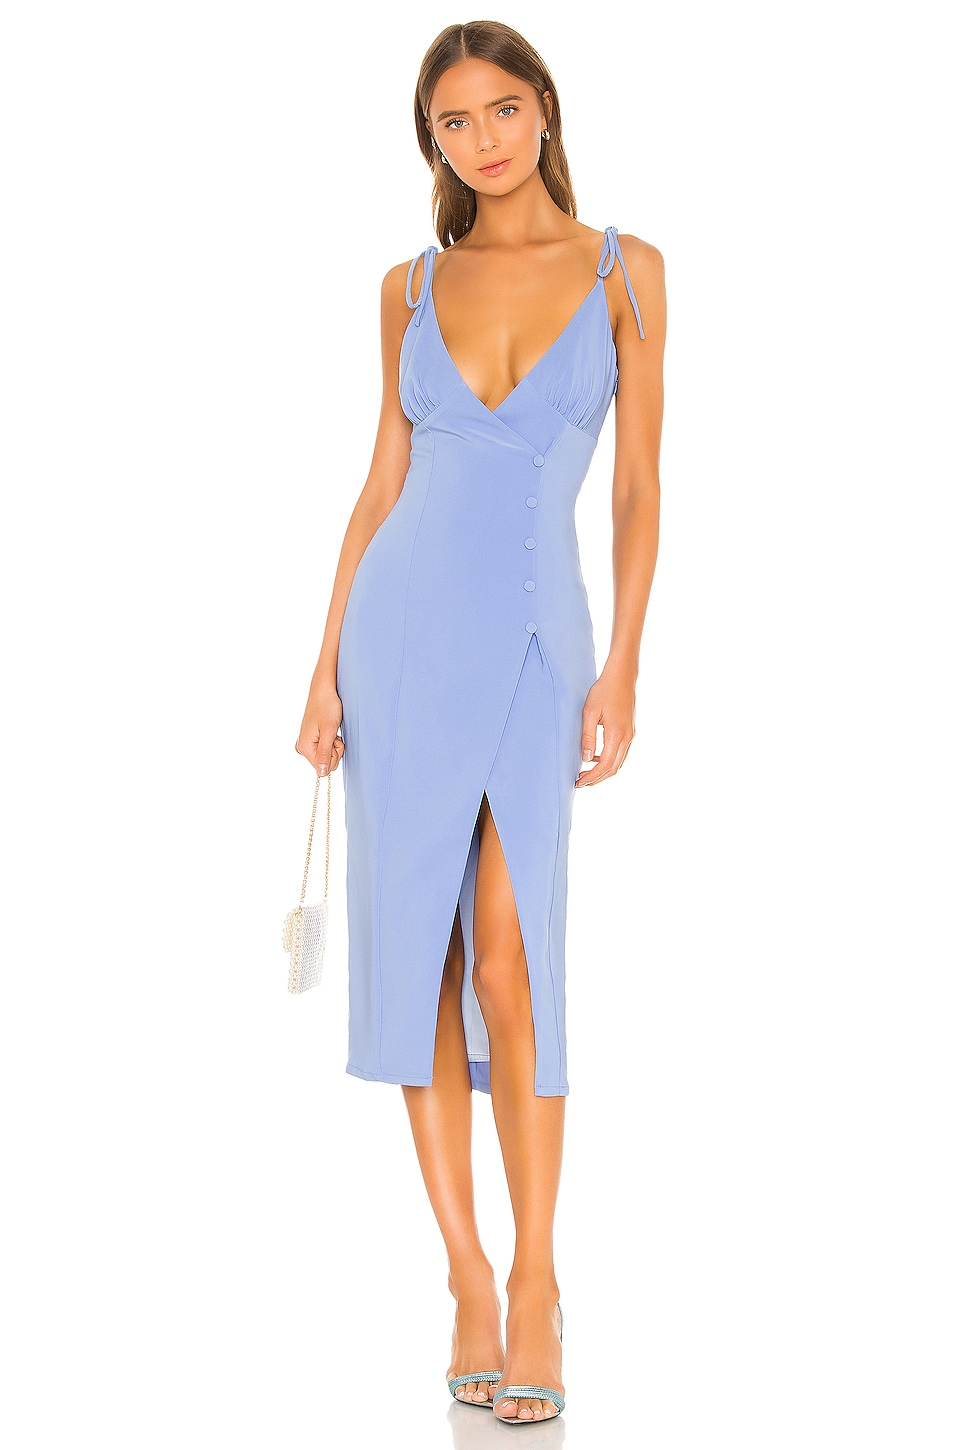 Camila Coelho Aaliyah Midi Dress in Periwinkle Blue